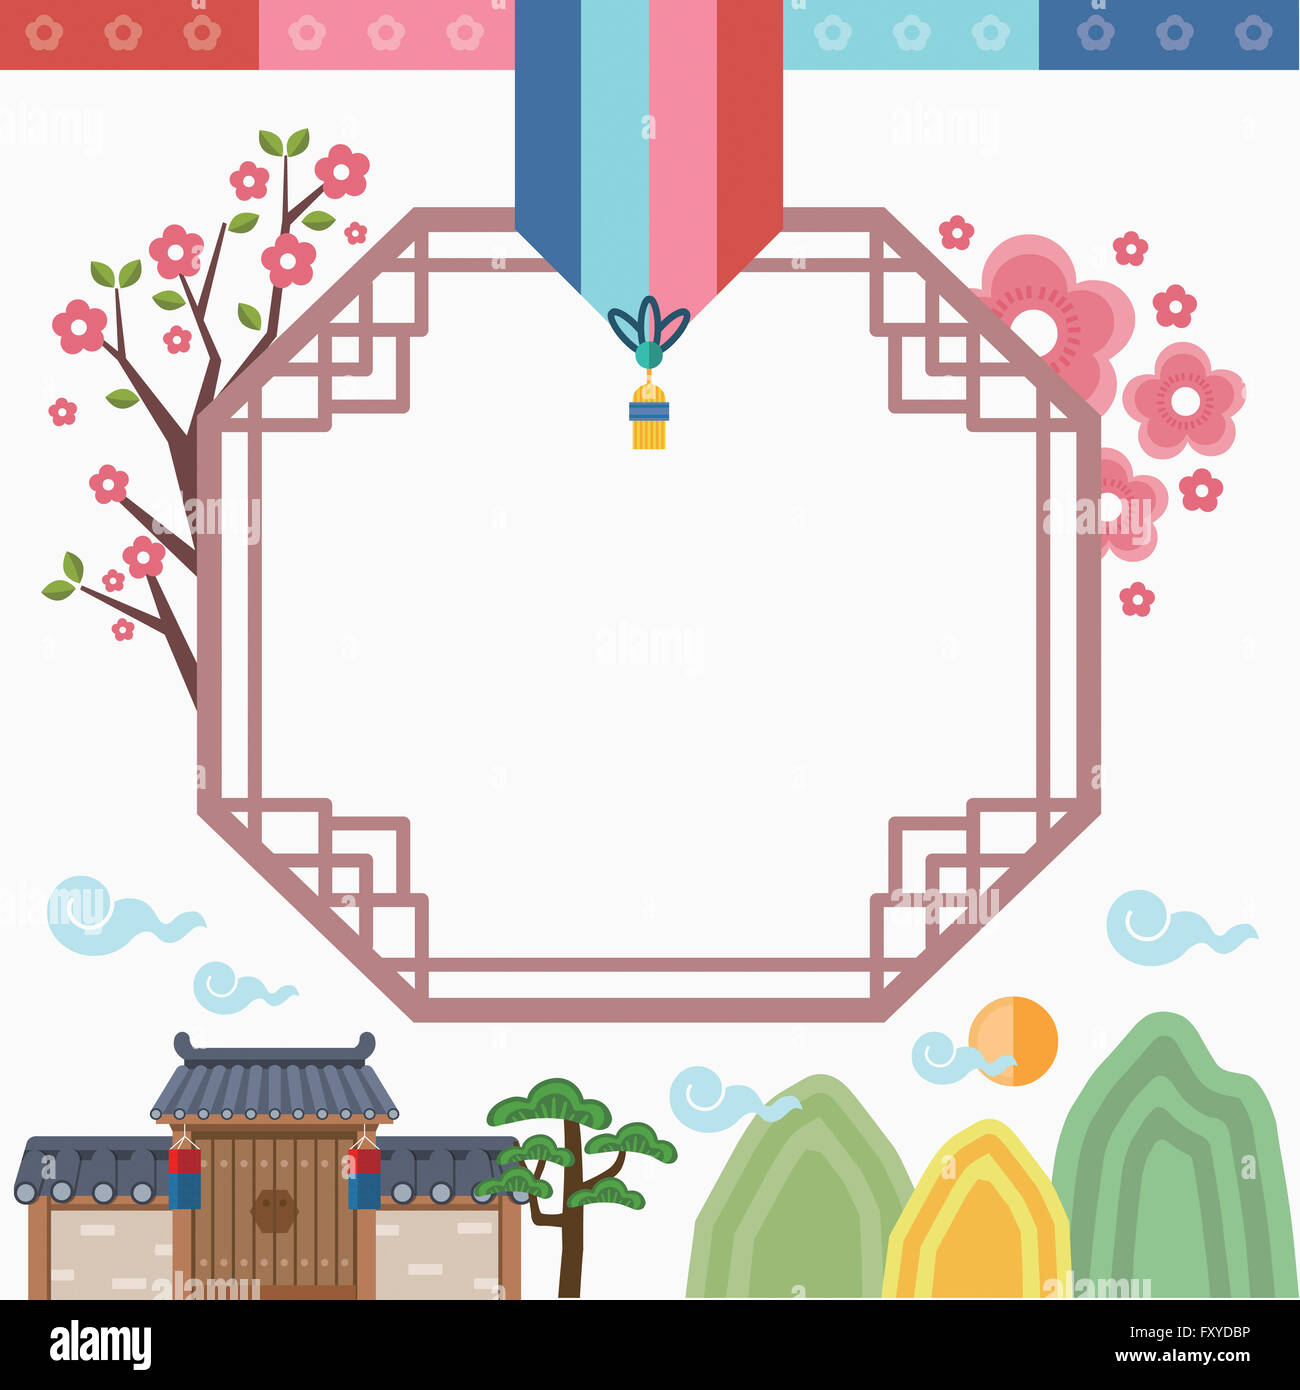 a636ec96c64 Frame with traditional Korean patterns Stock Photo  102636122 - Alamy